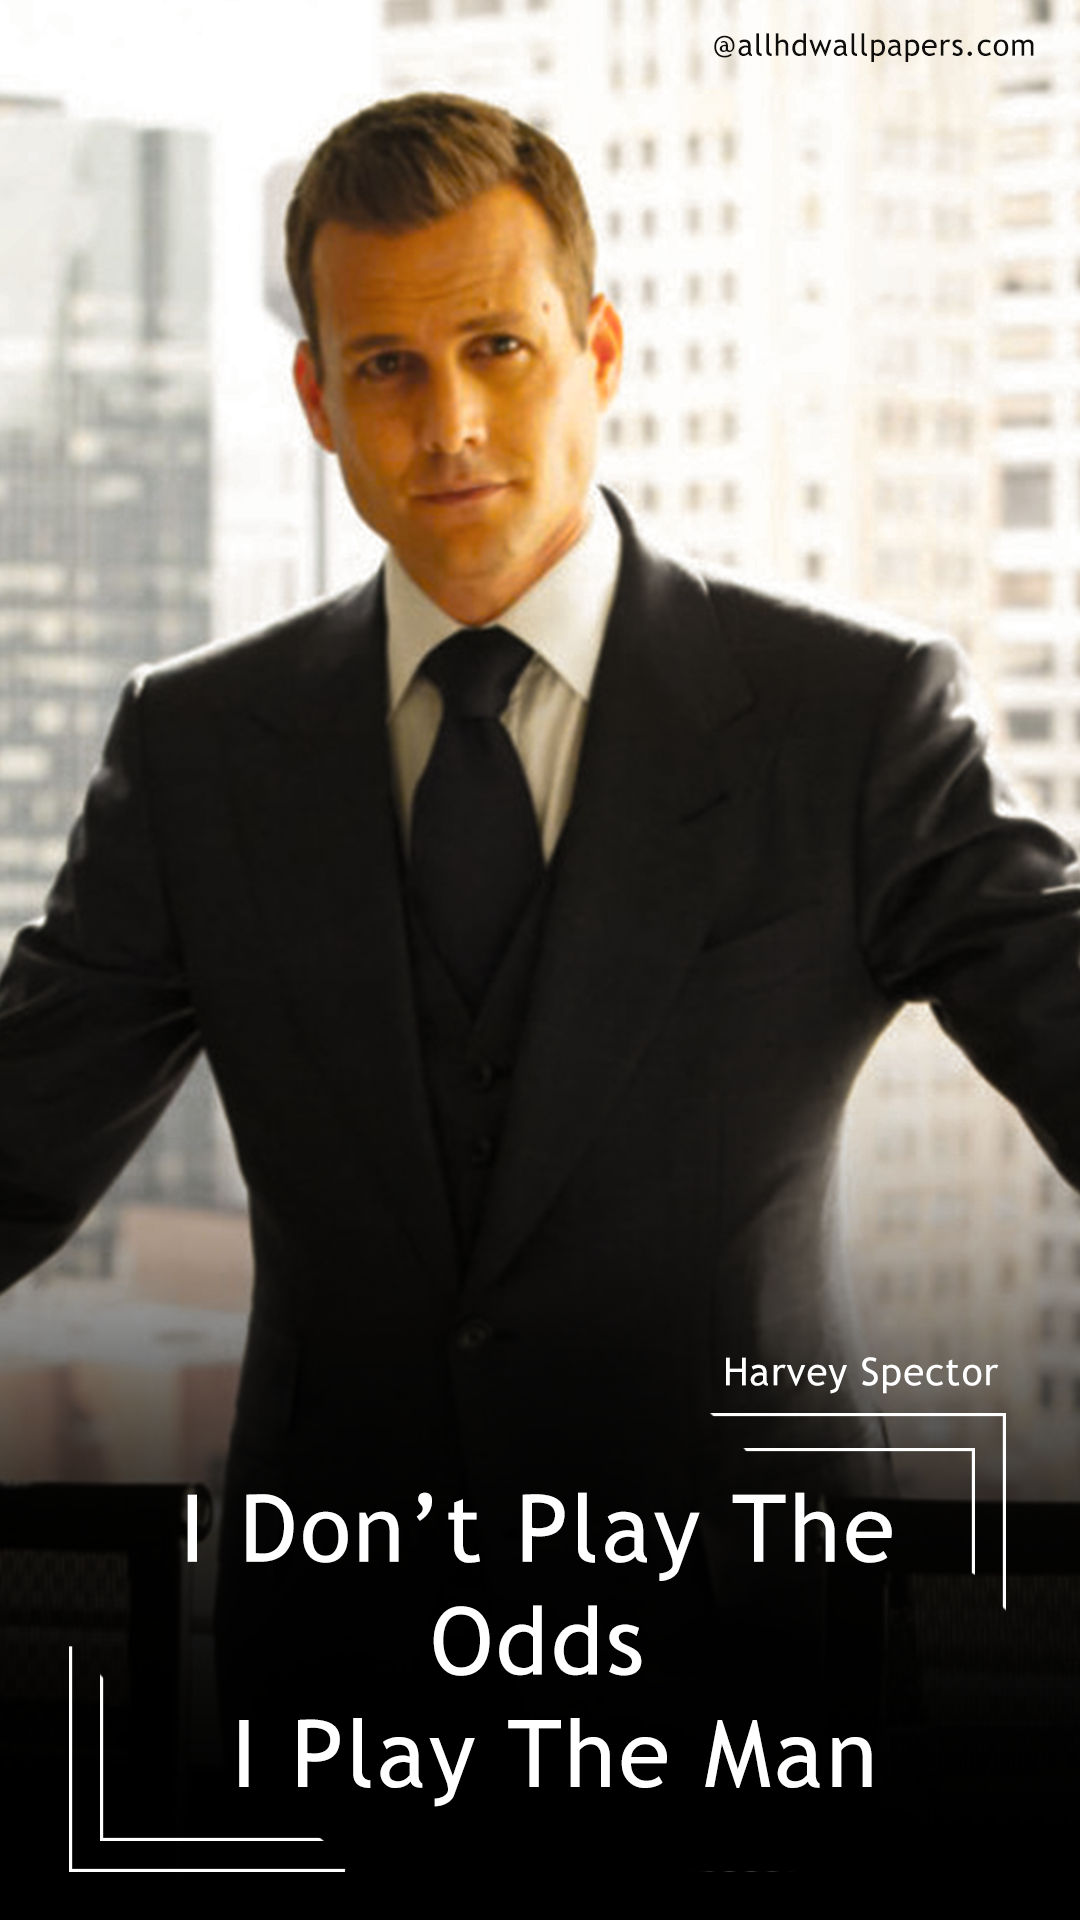 Harvey Specter mobile wallpaper